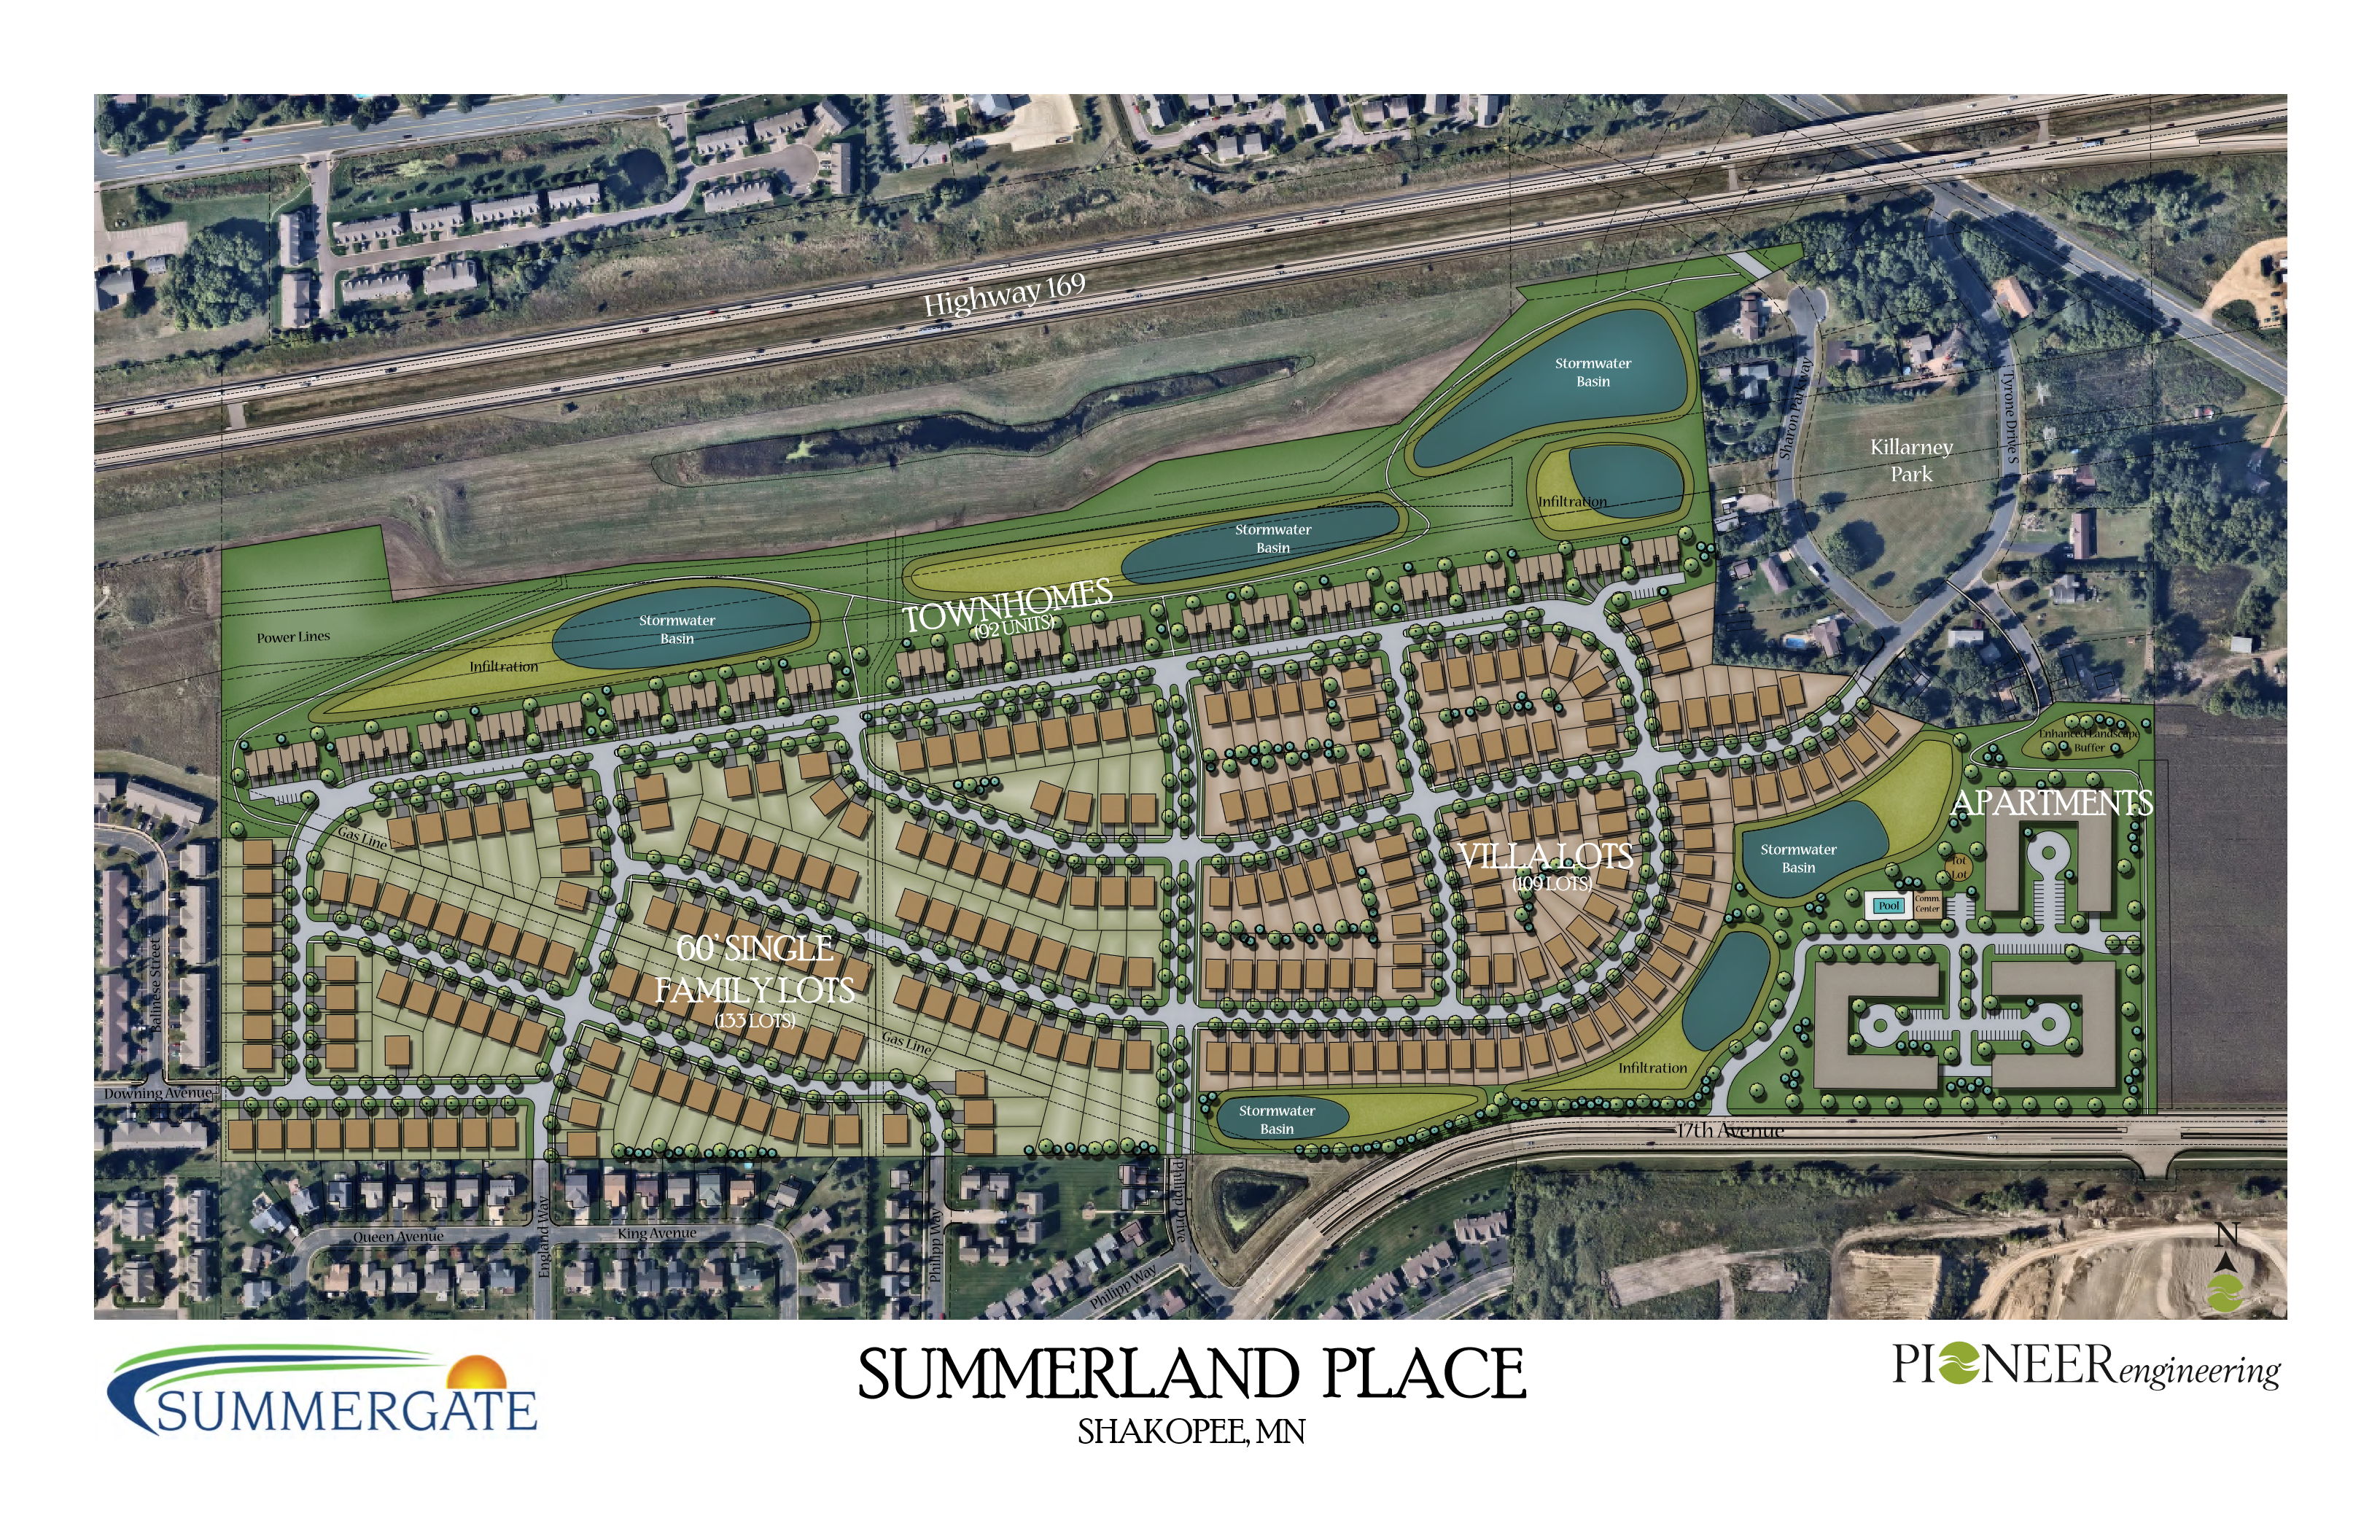 Summerland Place Color Rendering 7 1 19